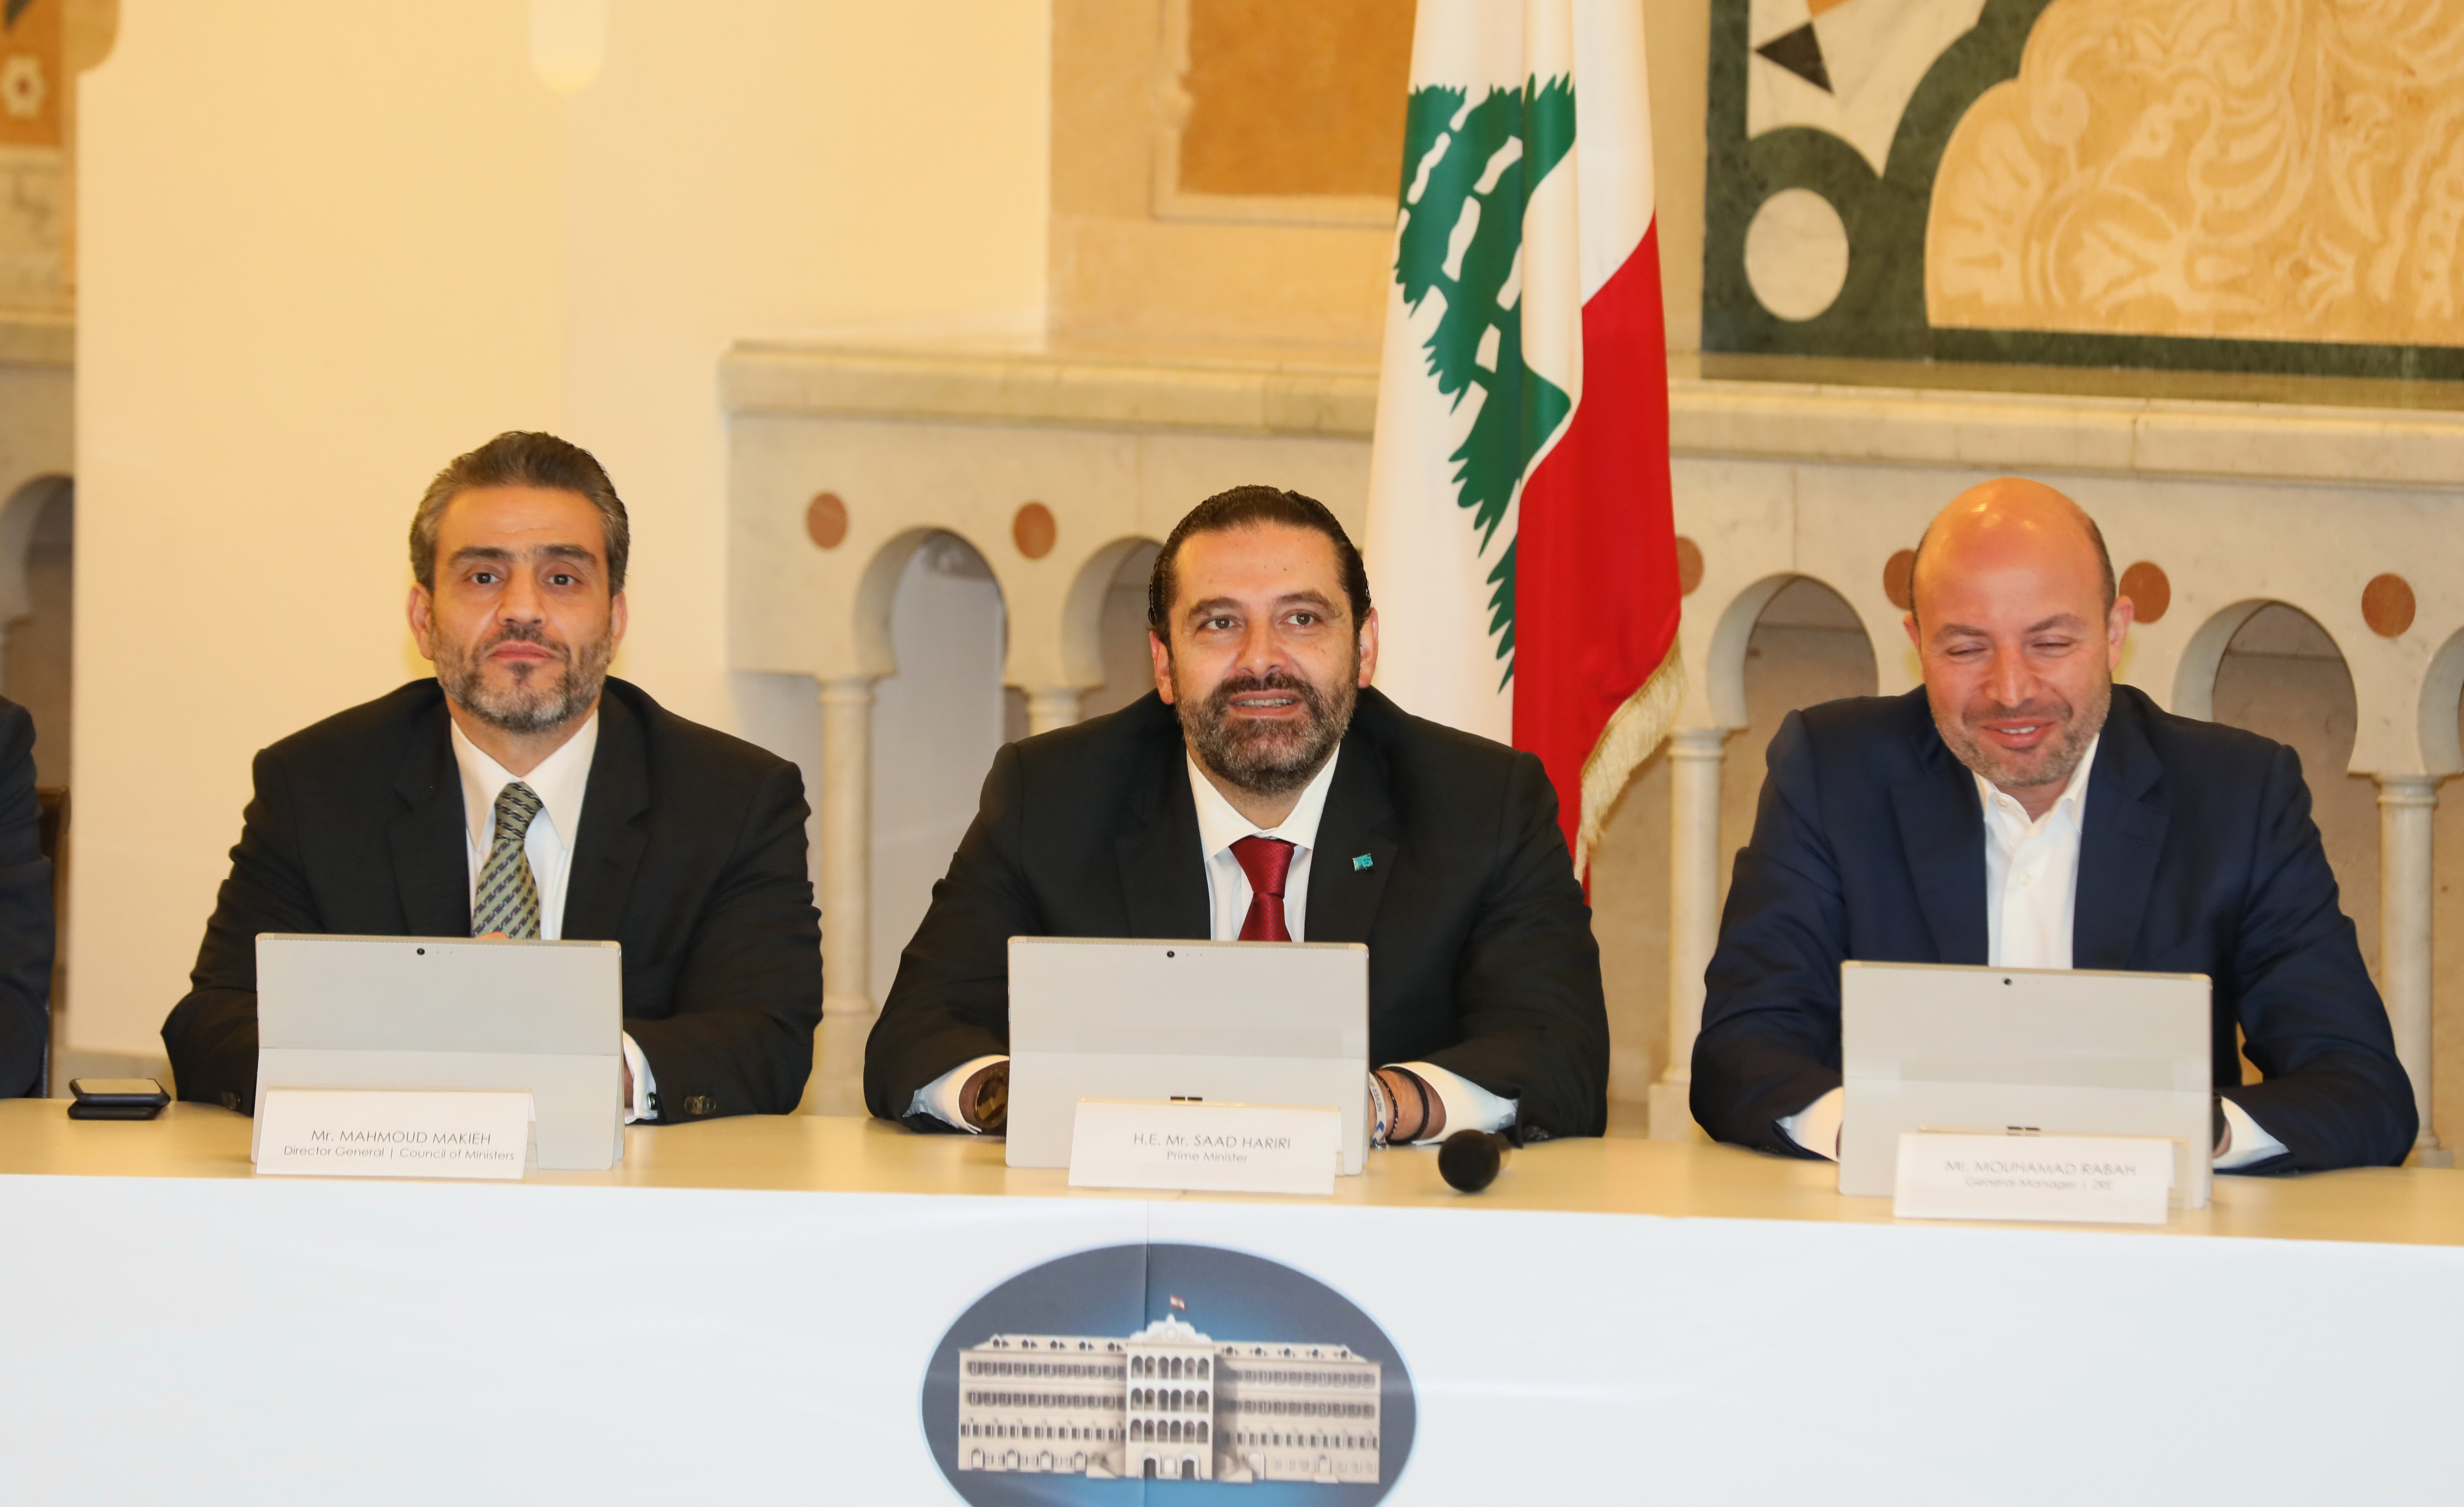 Pr Minister Saad Hariri Attends a Tournement at the Grand Serail 7